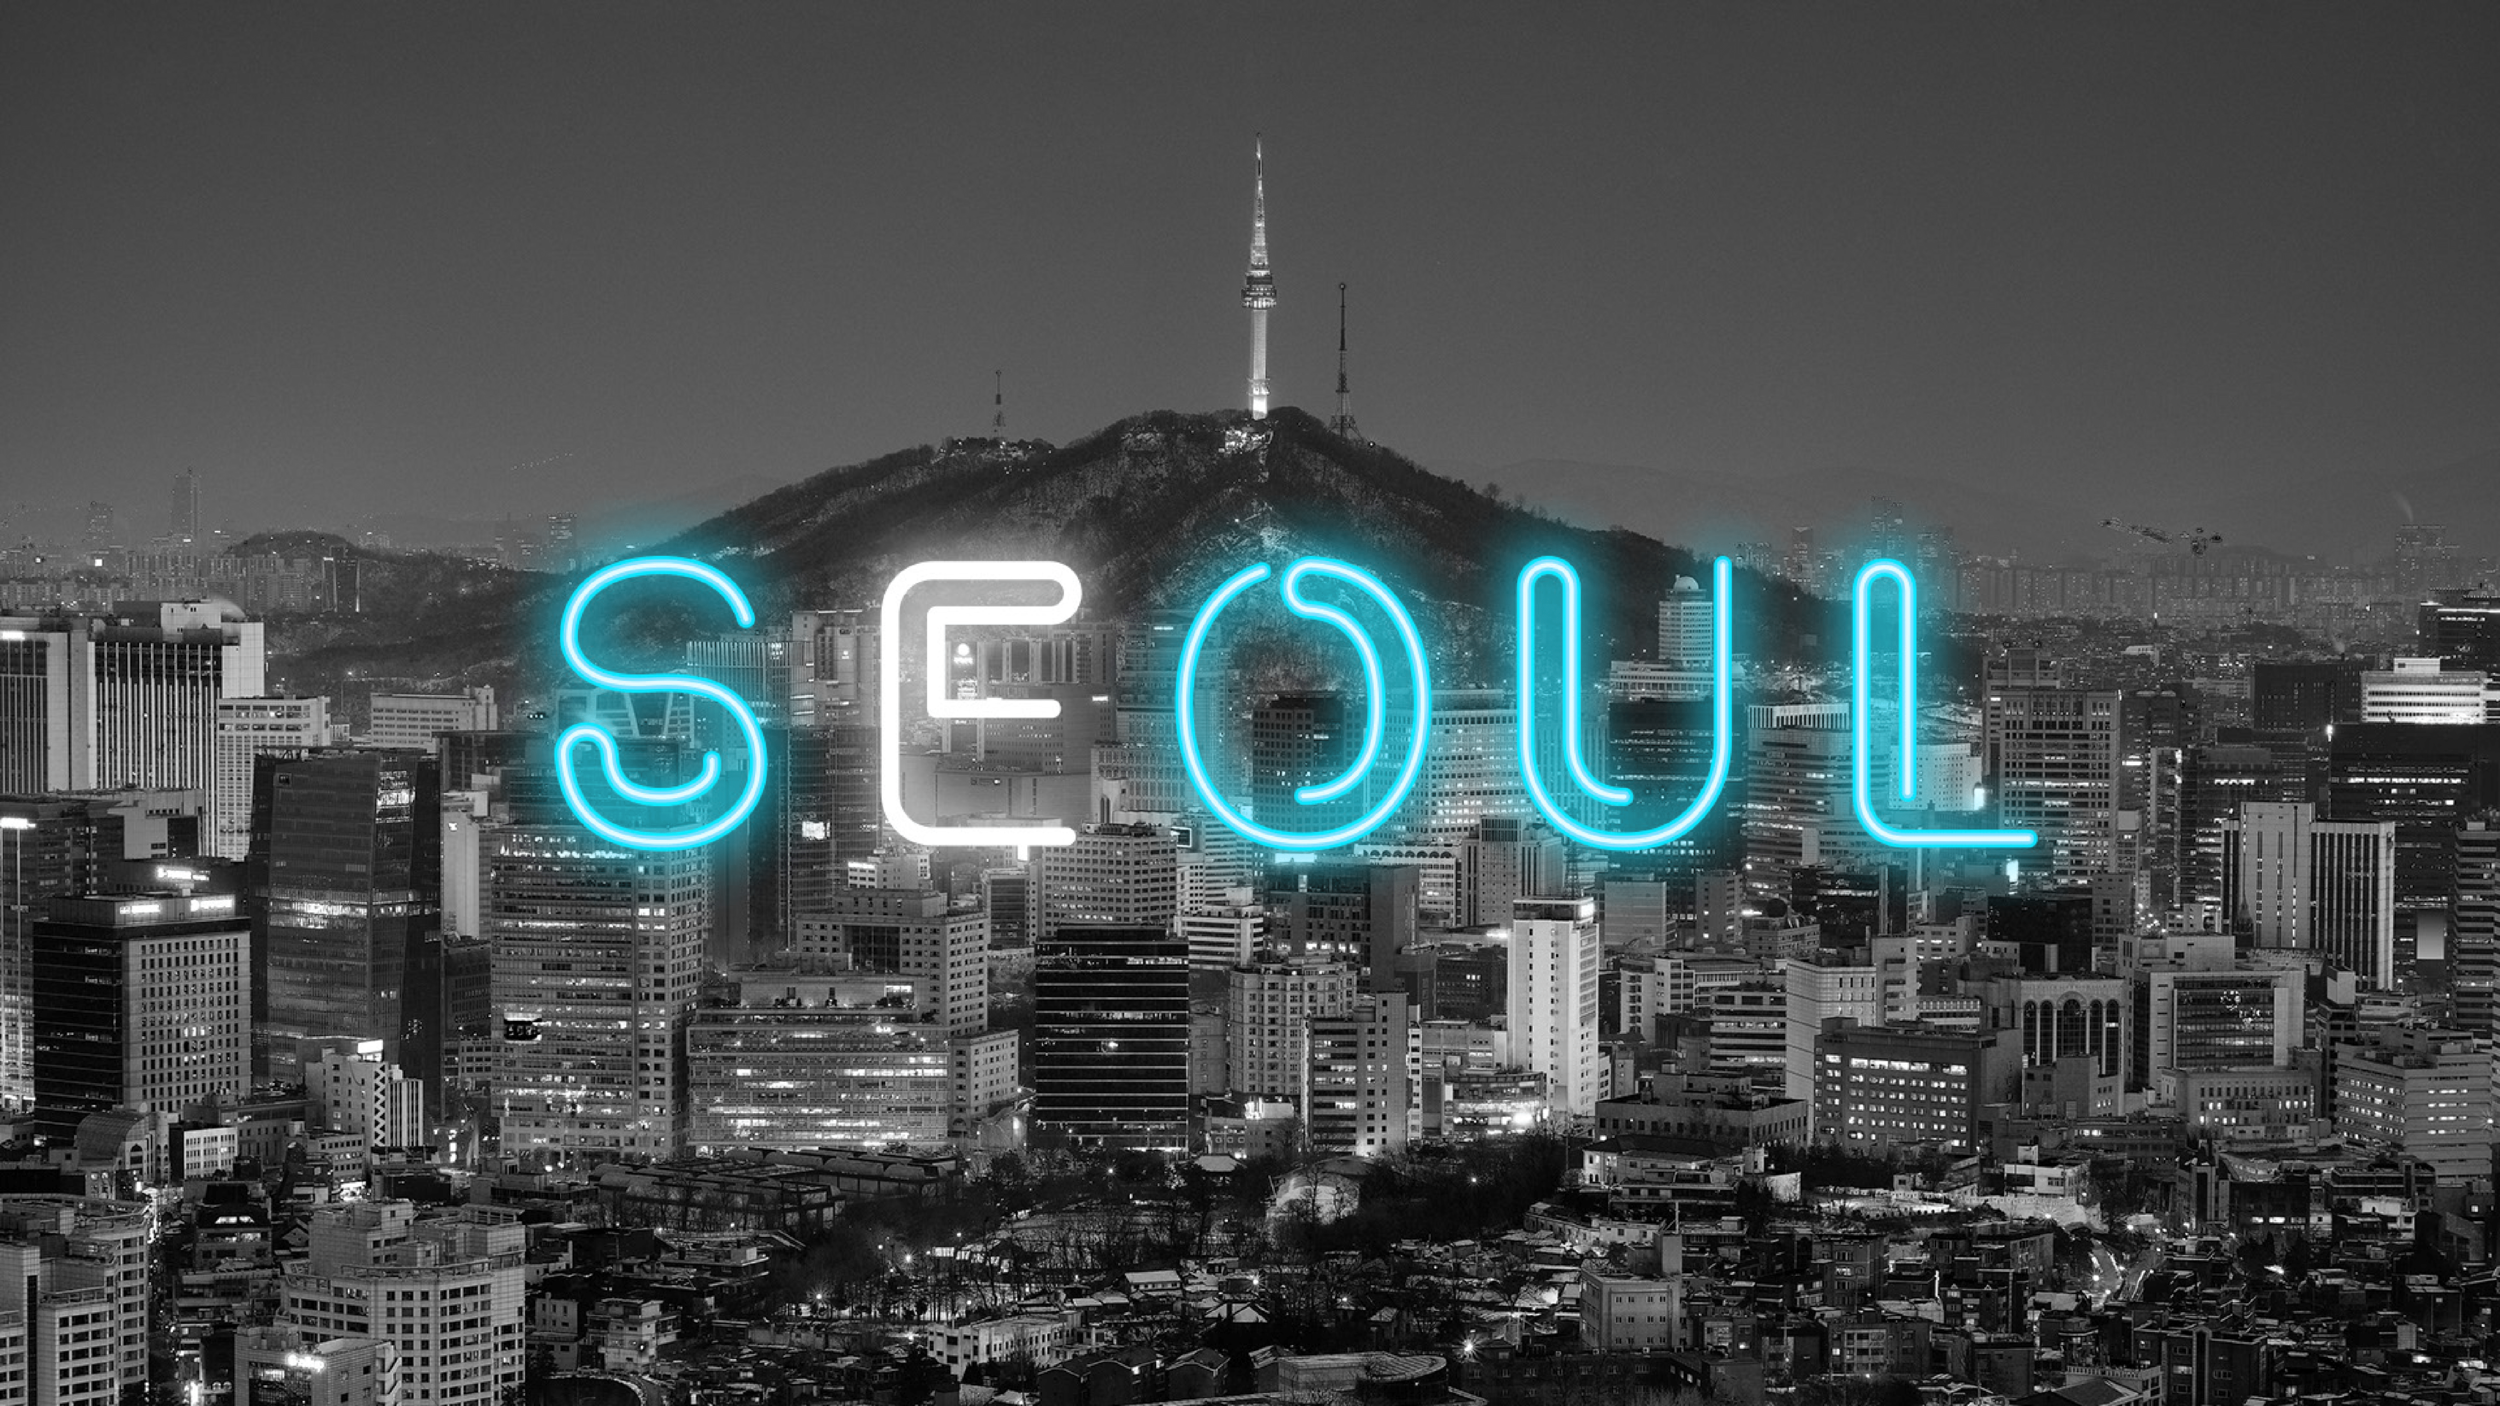 """revised design - After revising the title slide, I ask for the opinions from my team and we made consensus that the title slide should express more """"night energy"""" from Seoul. Using neon light as the font style allows the title slide fully express the """"night energy"""" and strongly establish the design language at the beginning of the presentation."""